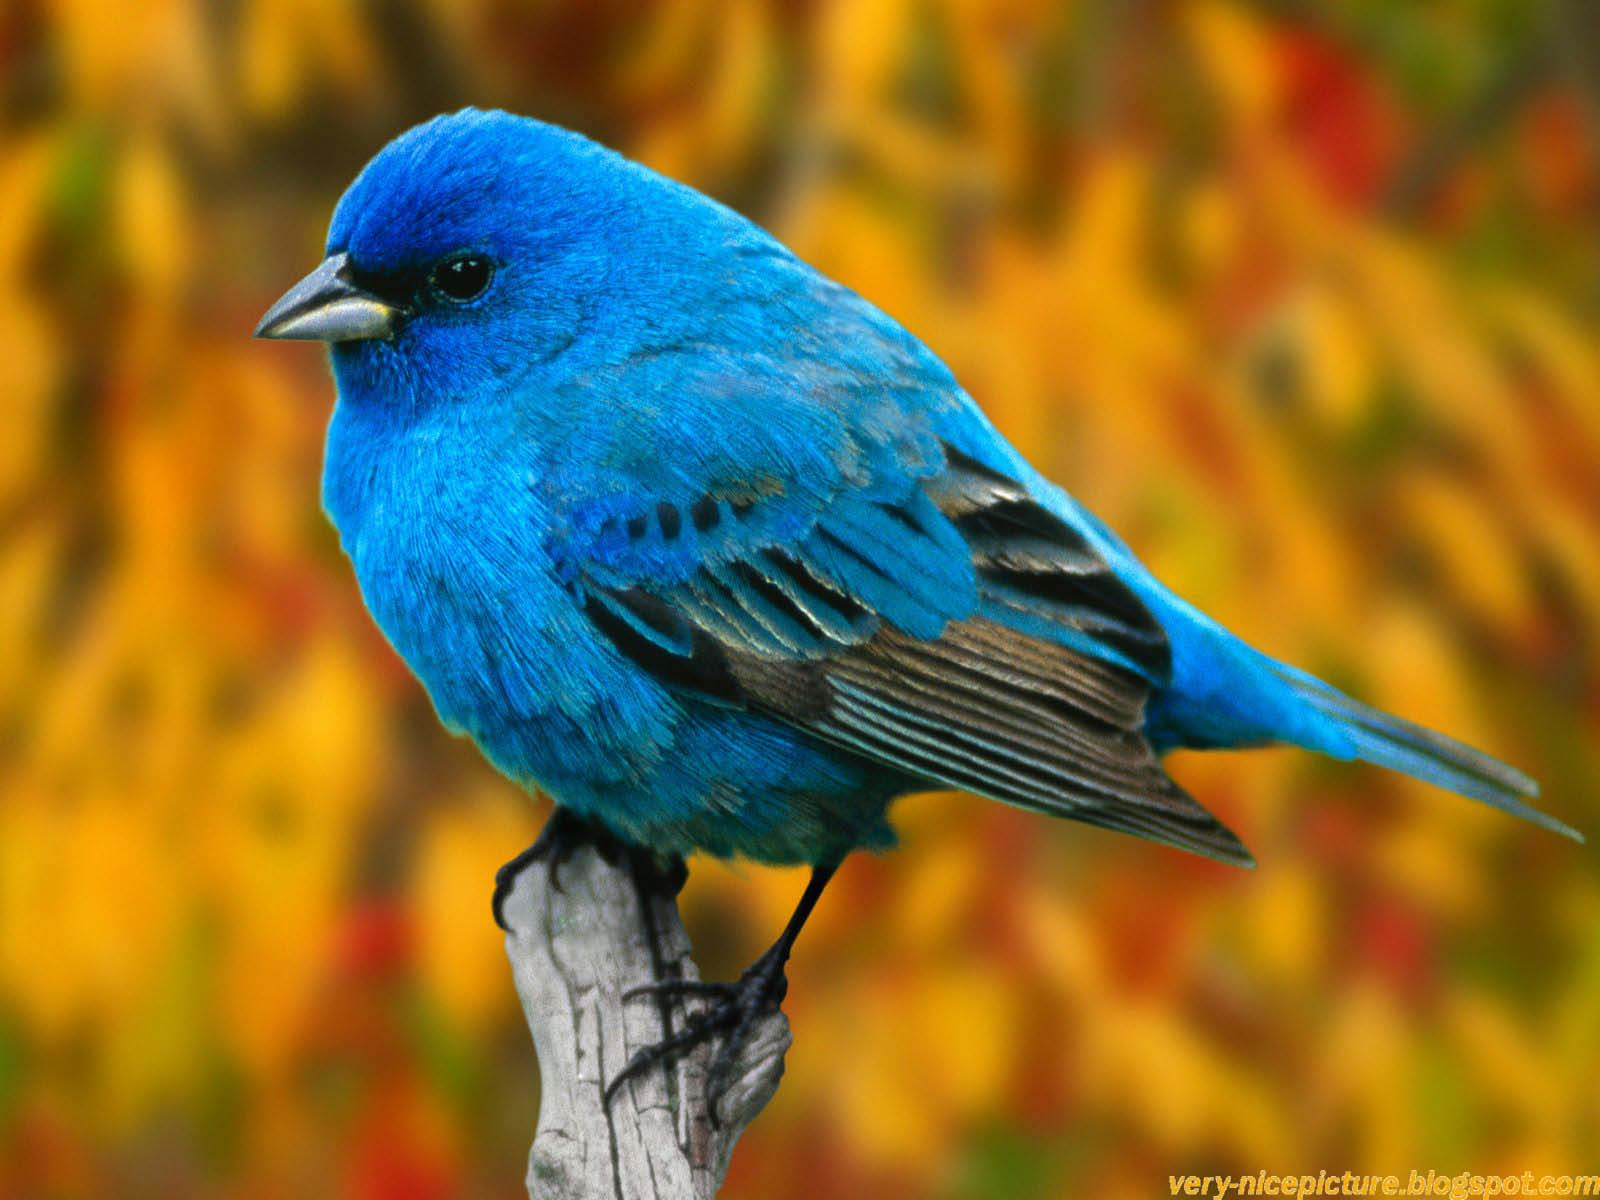 Nice wallpapers birds wallpapers natural wallpapers - Hd pics of nature with birds ...